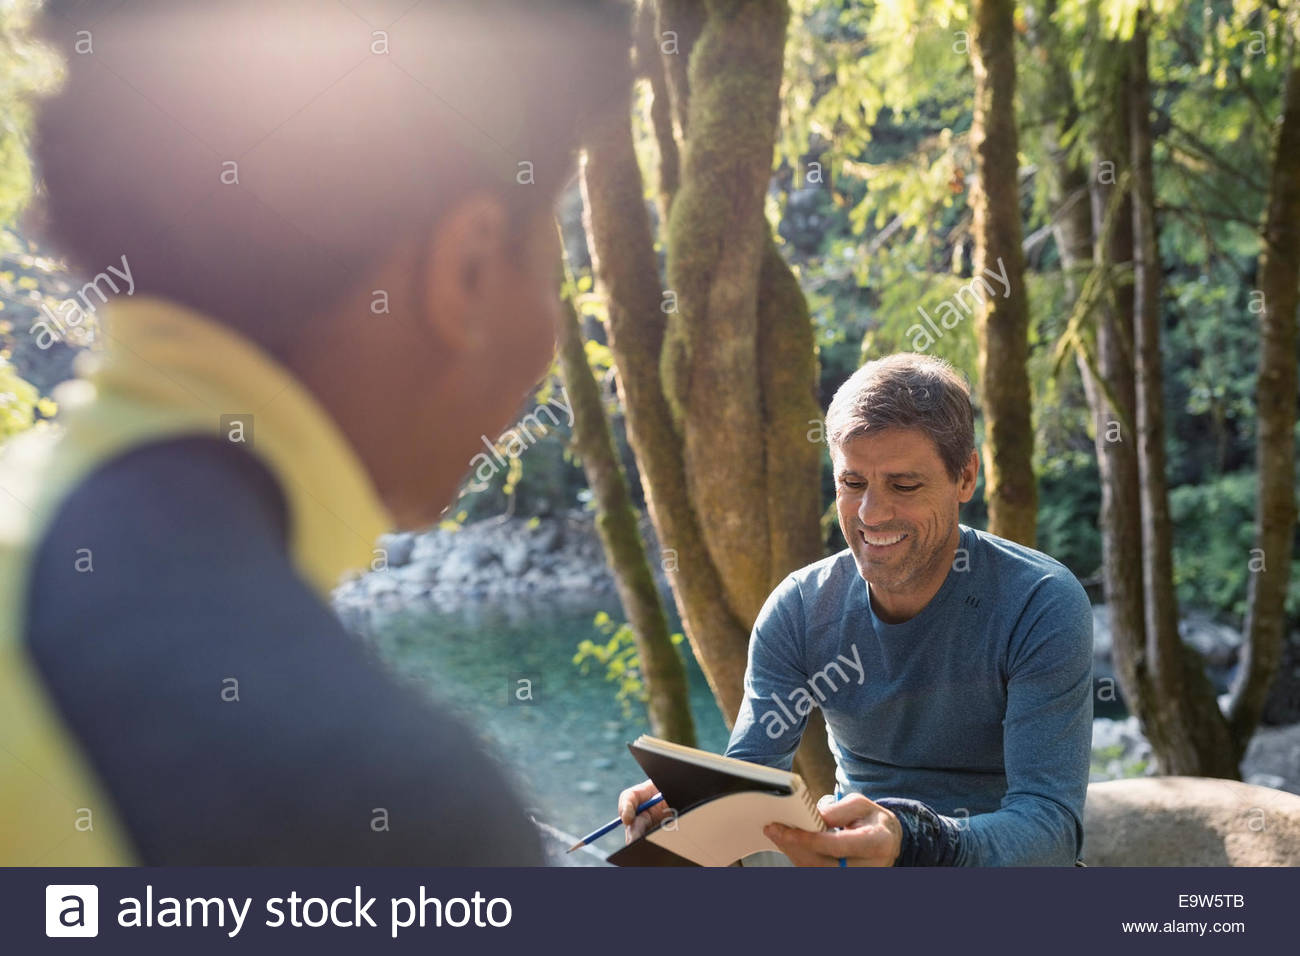 Couple with notebook at creekside in woods - Stock Image